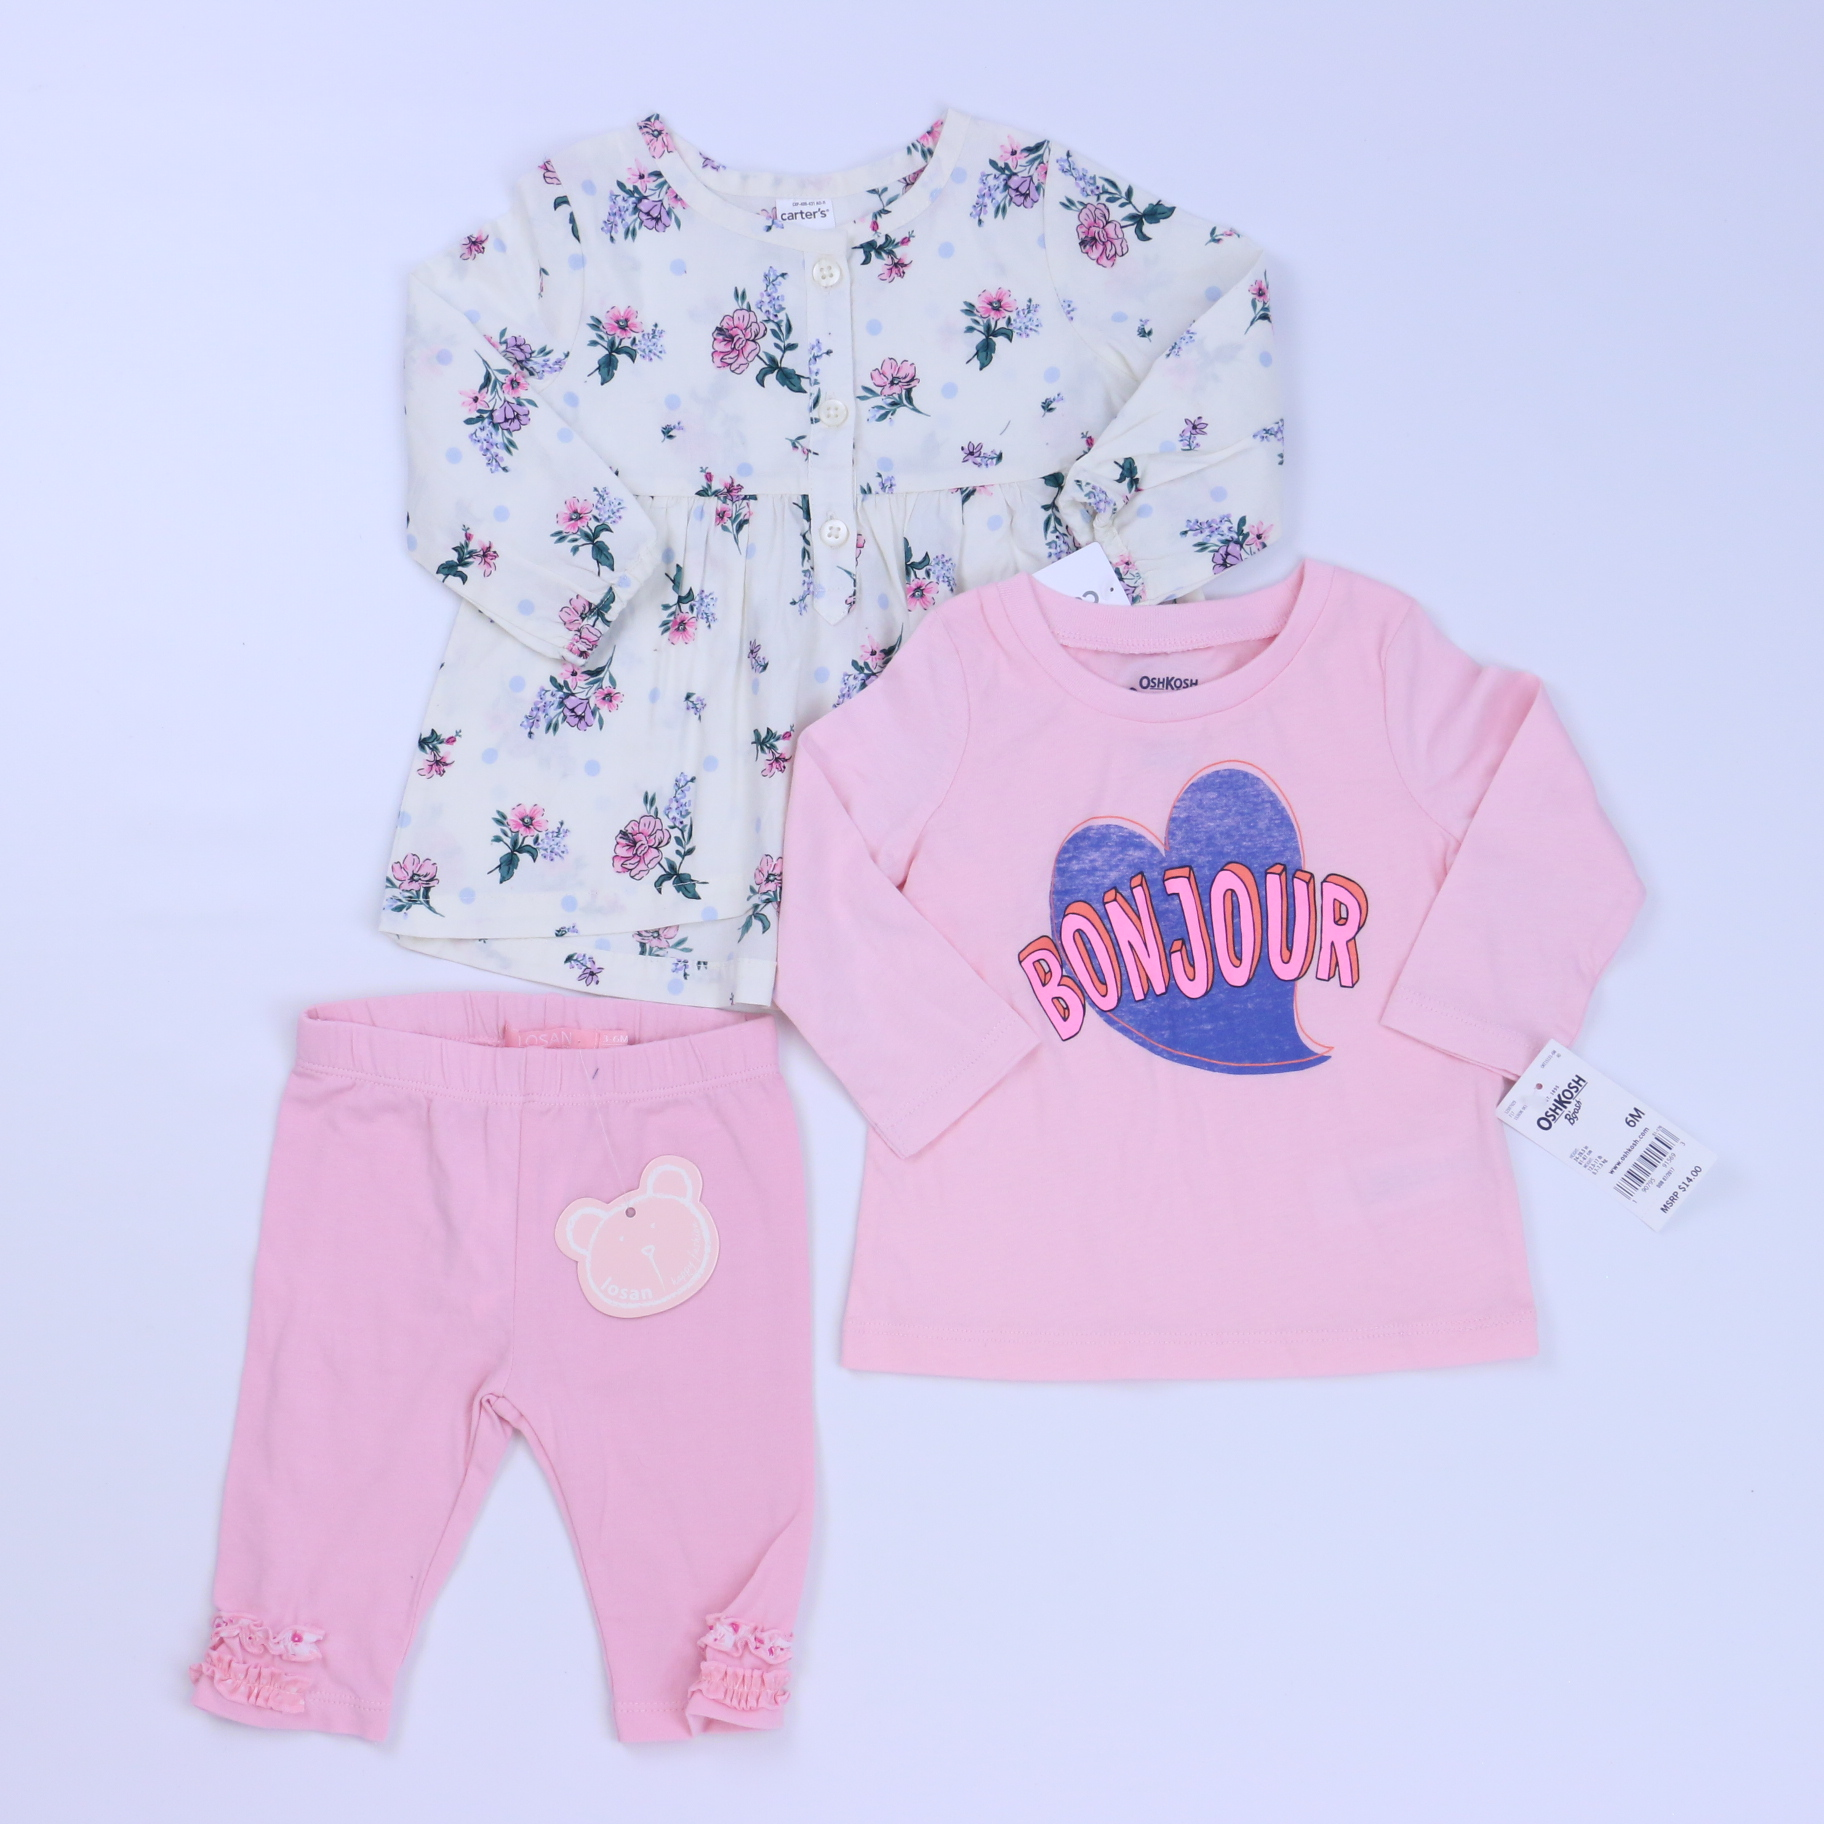 35dbad7f22ab0 3-pieces Apparel Sets size: 3-6 Months - The Swoondle Society